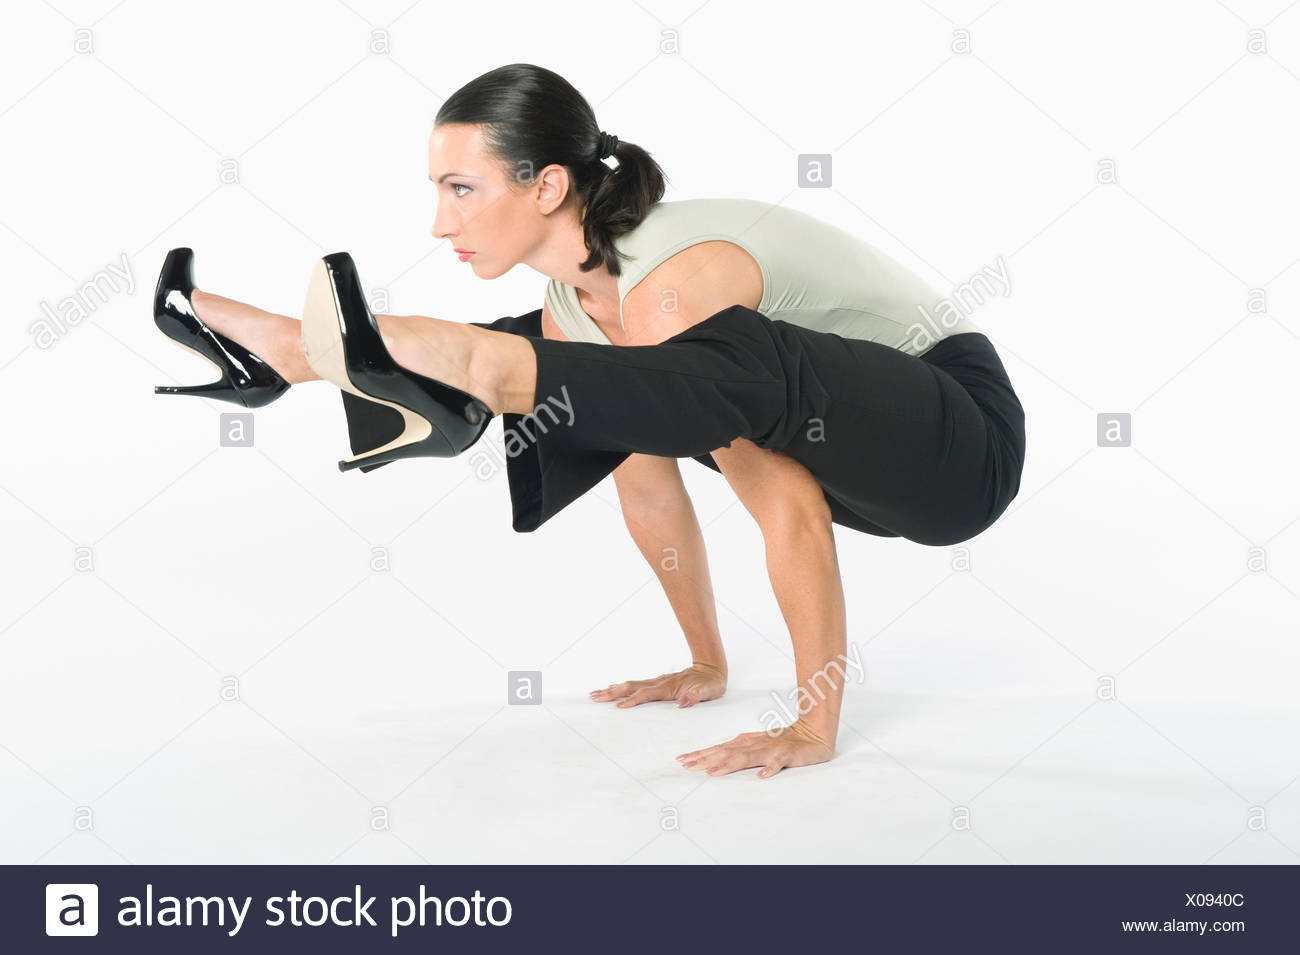 Woman with high heels exercising - Stock Image